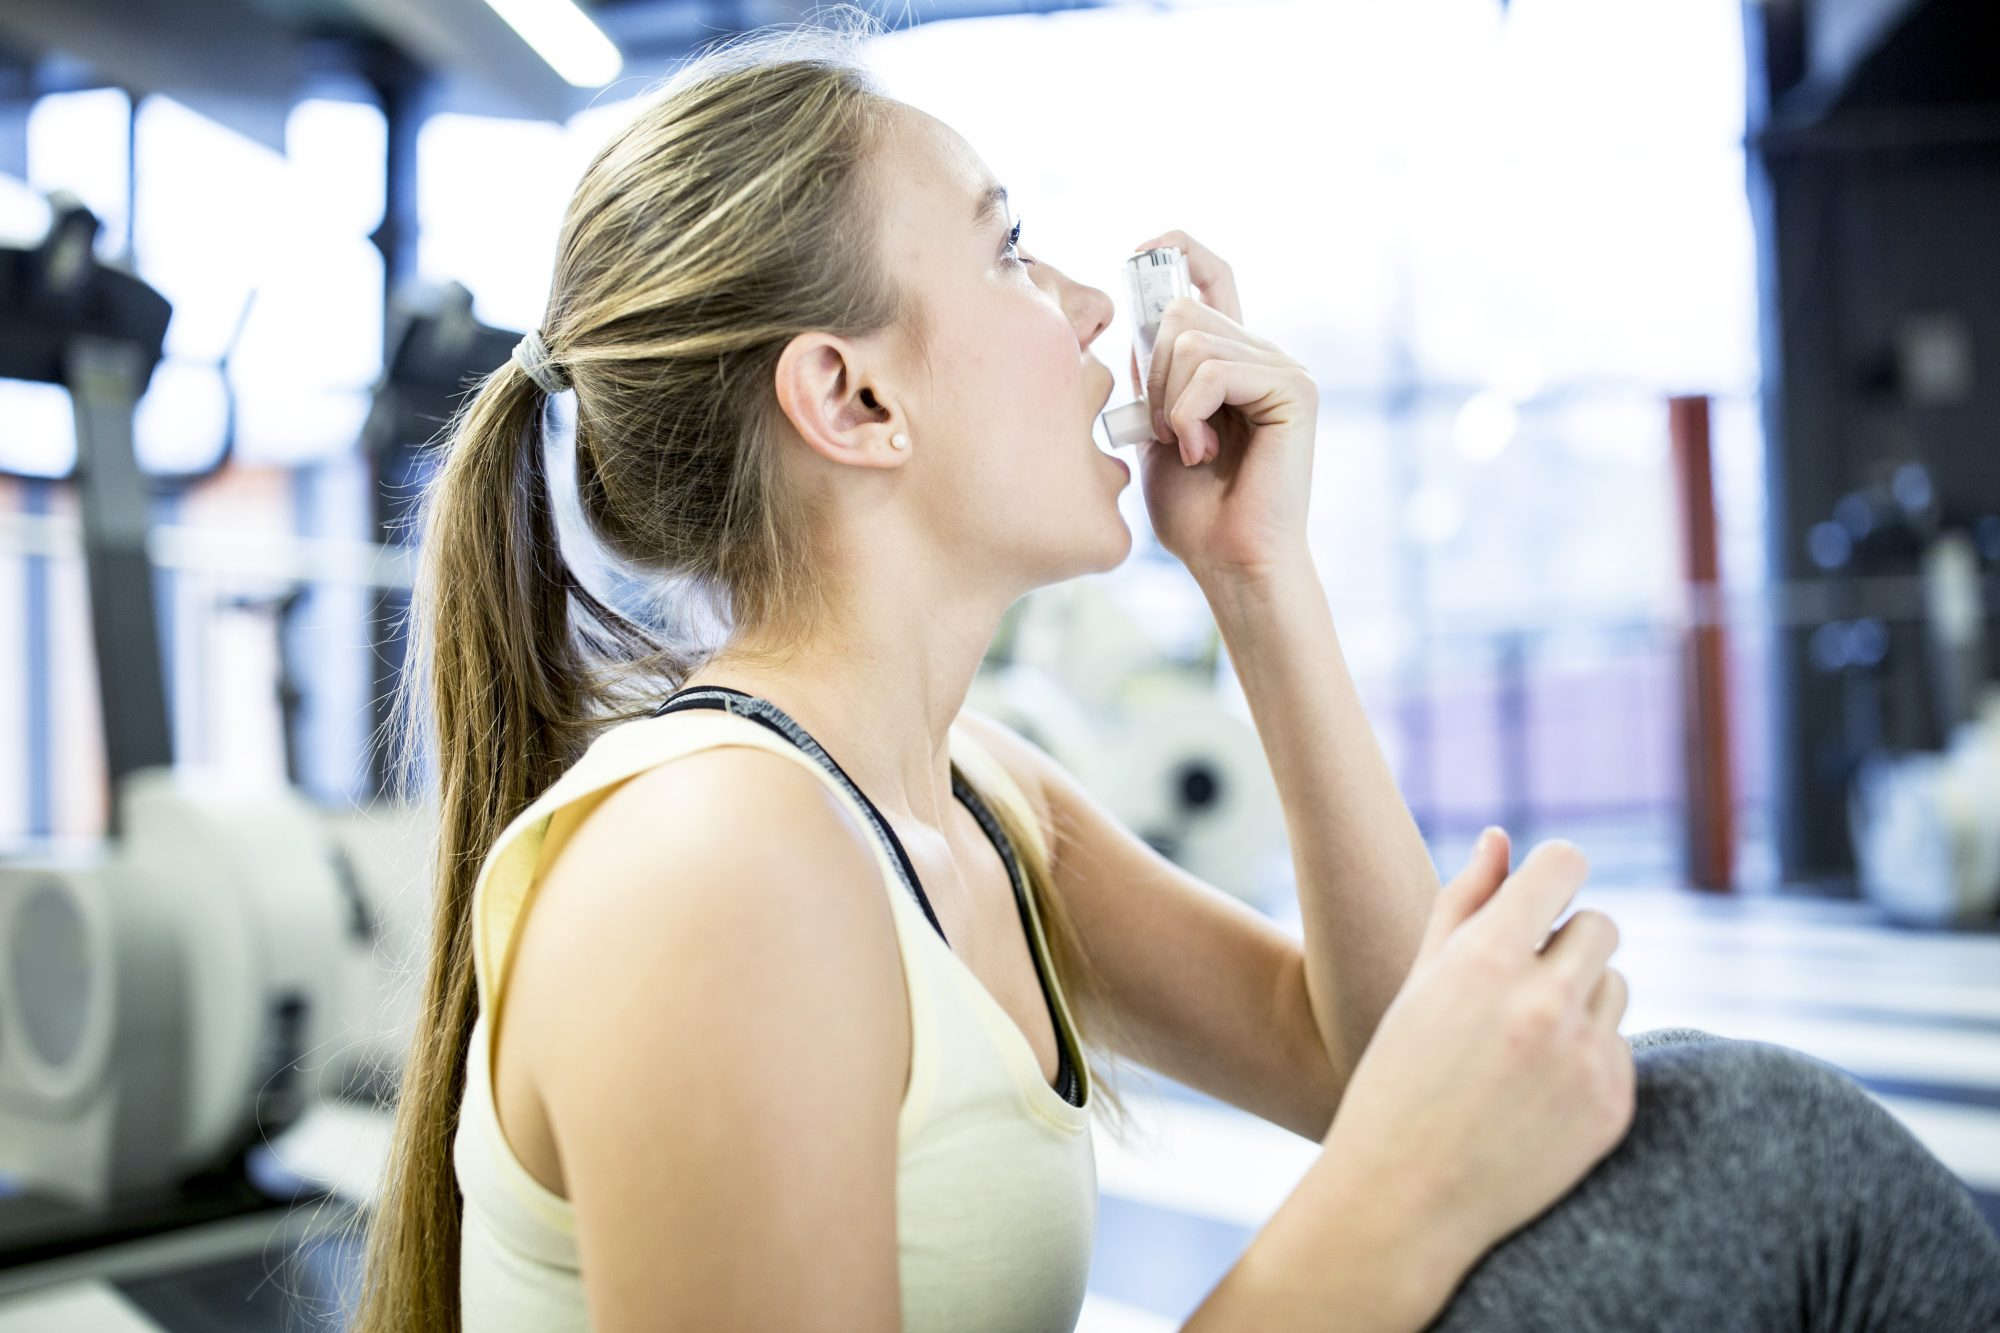 asthma-workout-inhaler